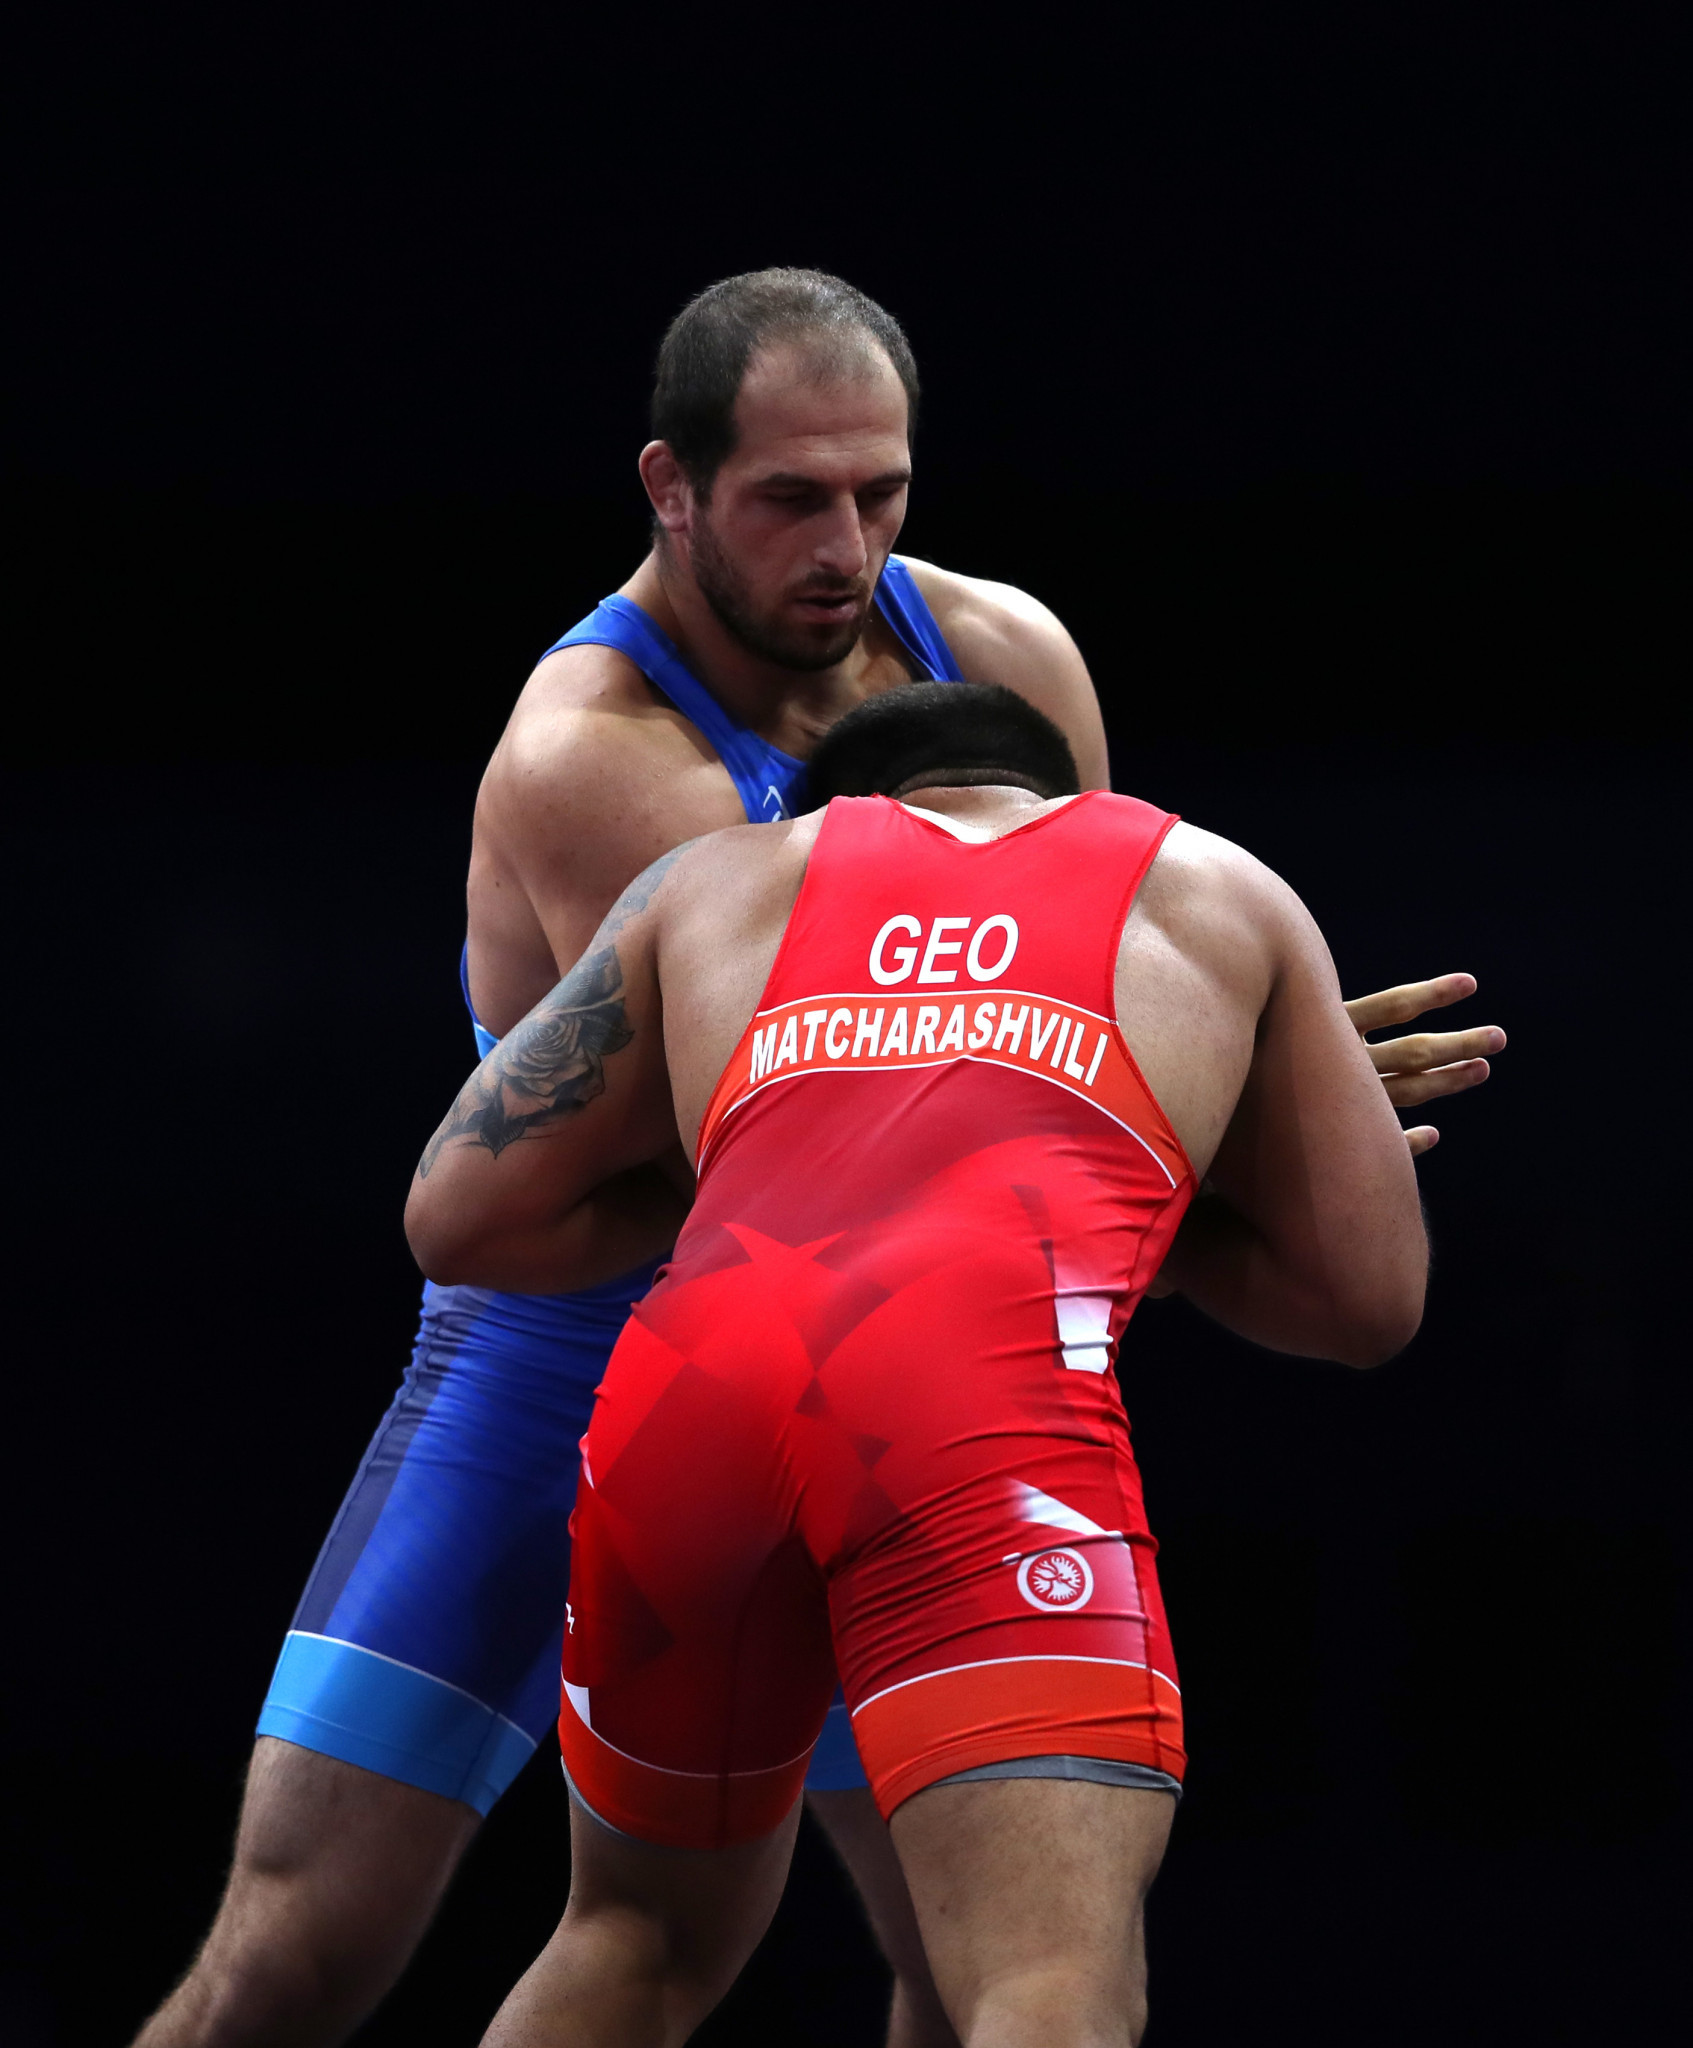 Khizniev earns men's 125kg title as Russia win three golds from four in opening medal night of men's freestyle wrestling at Minsk 2019